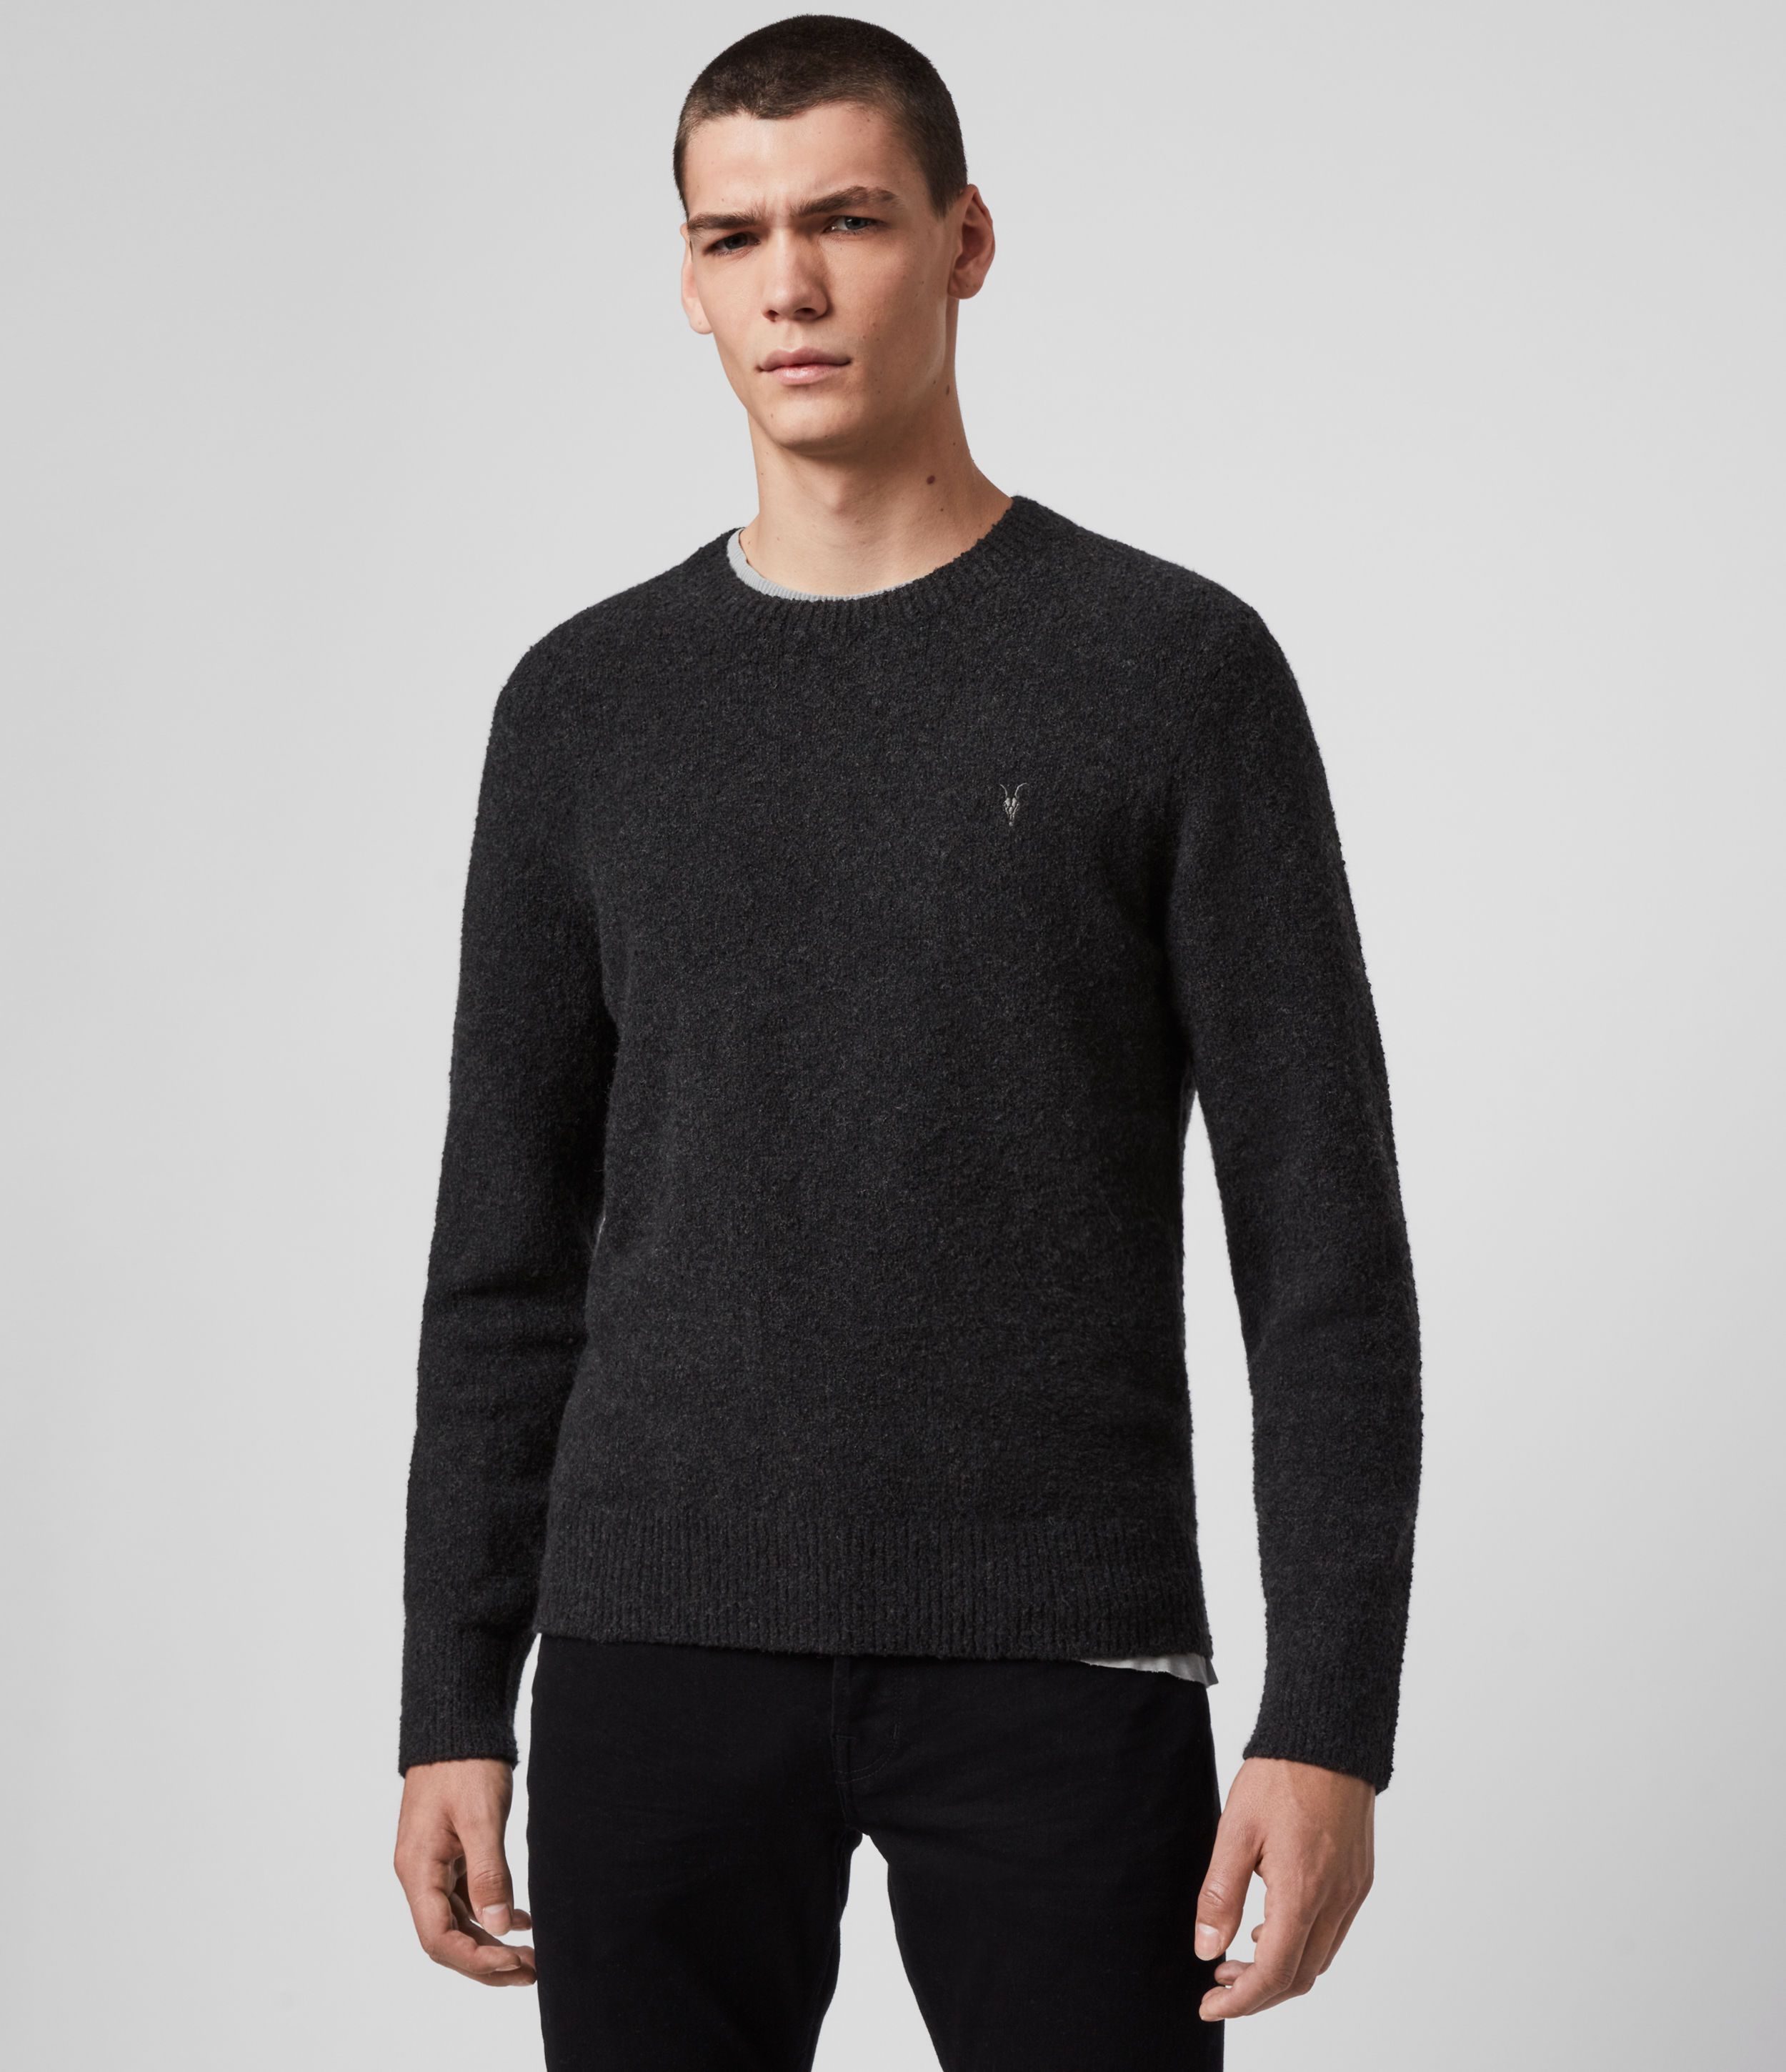 AllSaints Men's Cotton Regular Fit Tolnar Crew Jumper, Black, Size: XXL